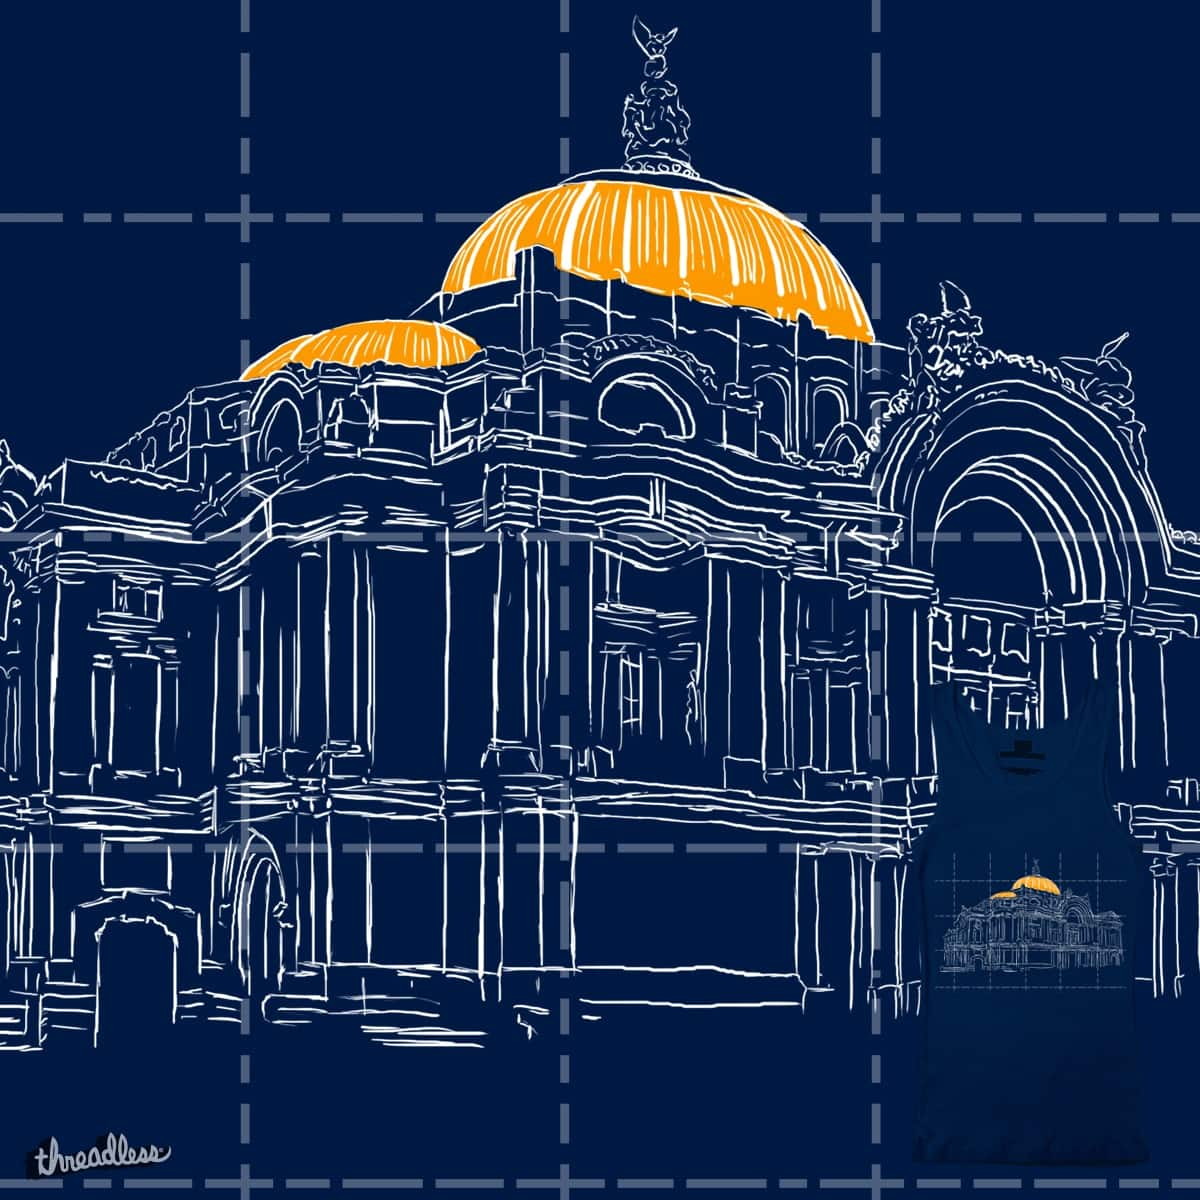 Bellas artes  by InktvisPock on Threadless